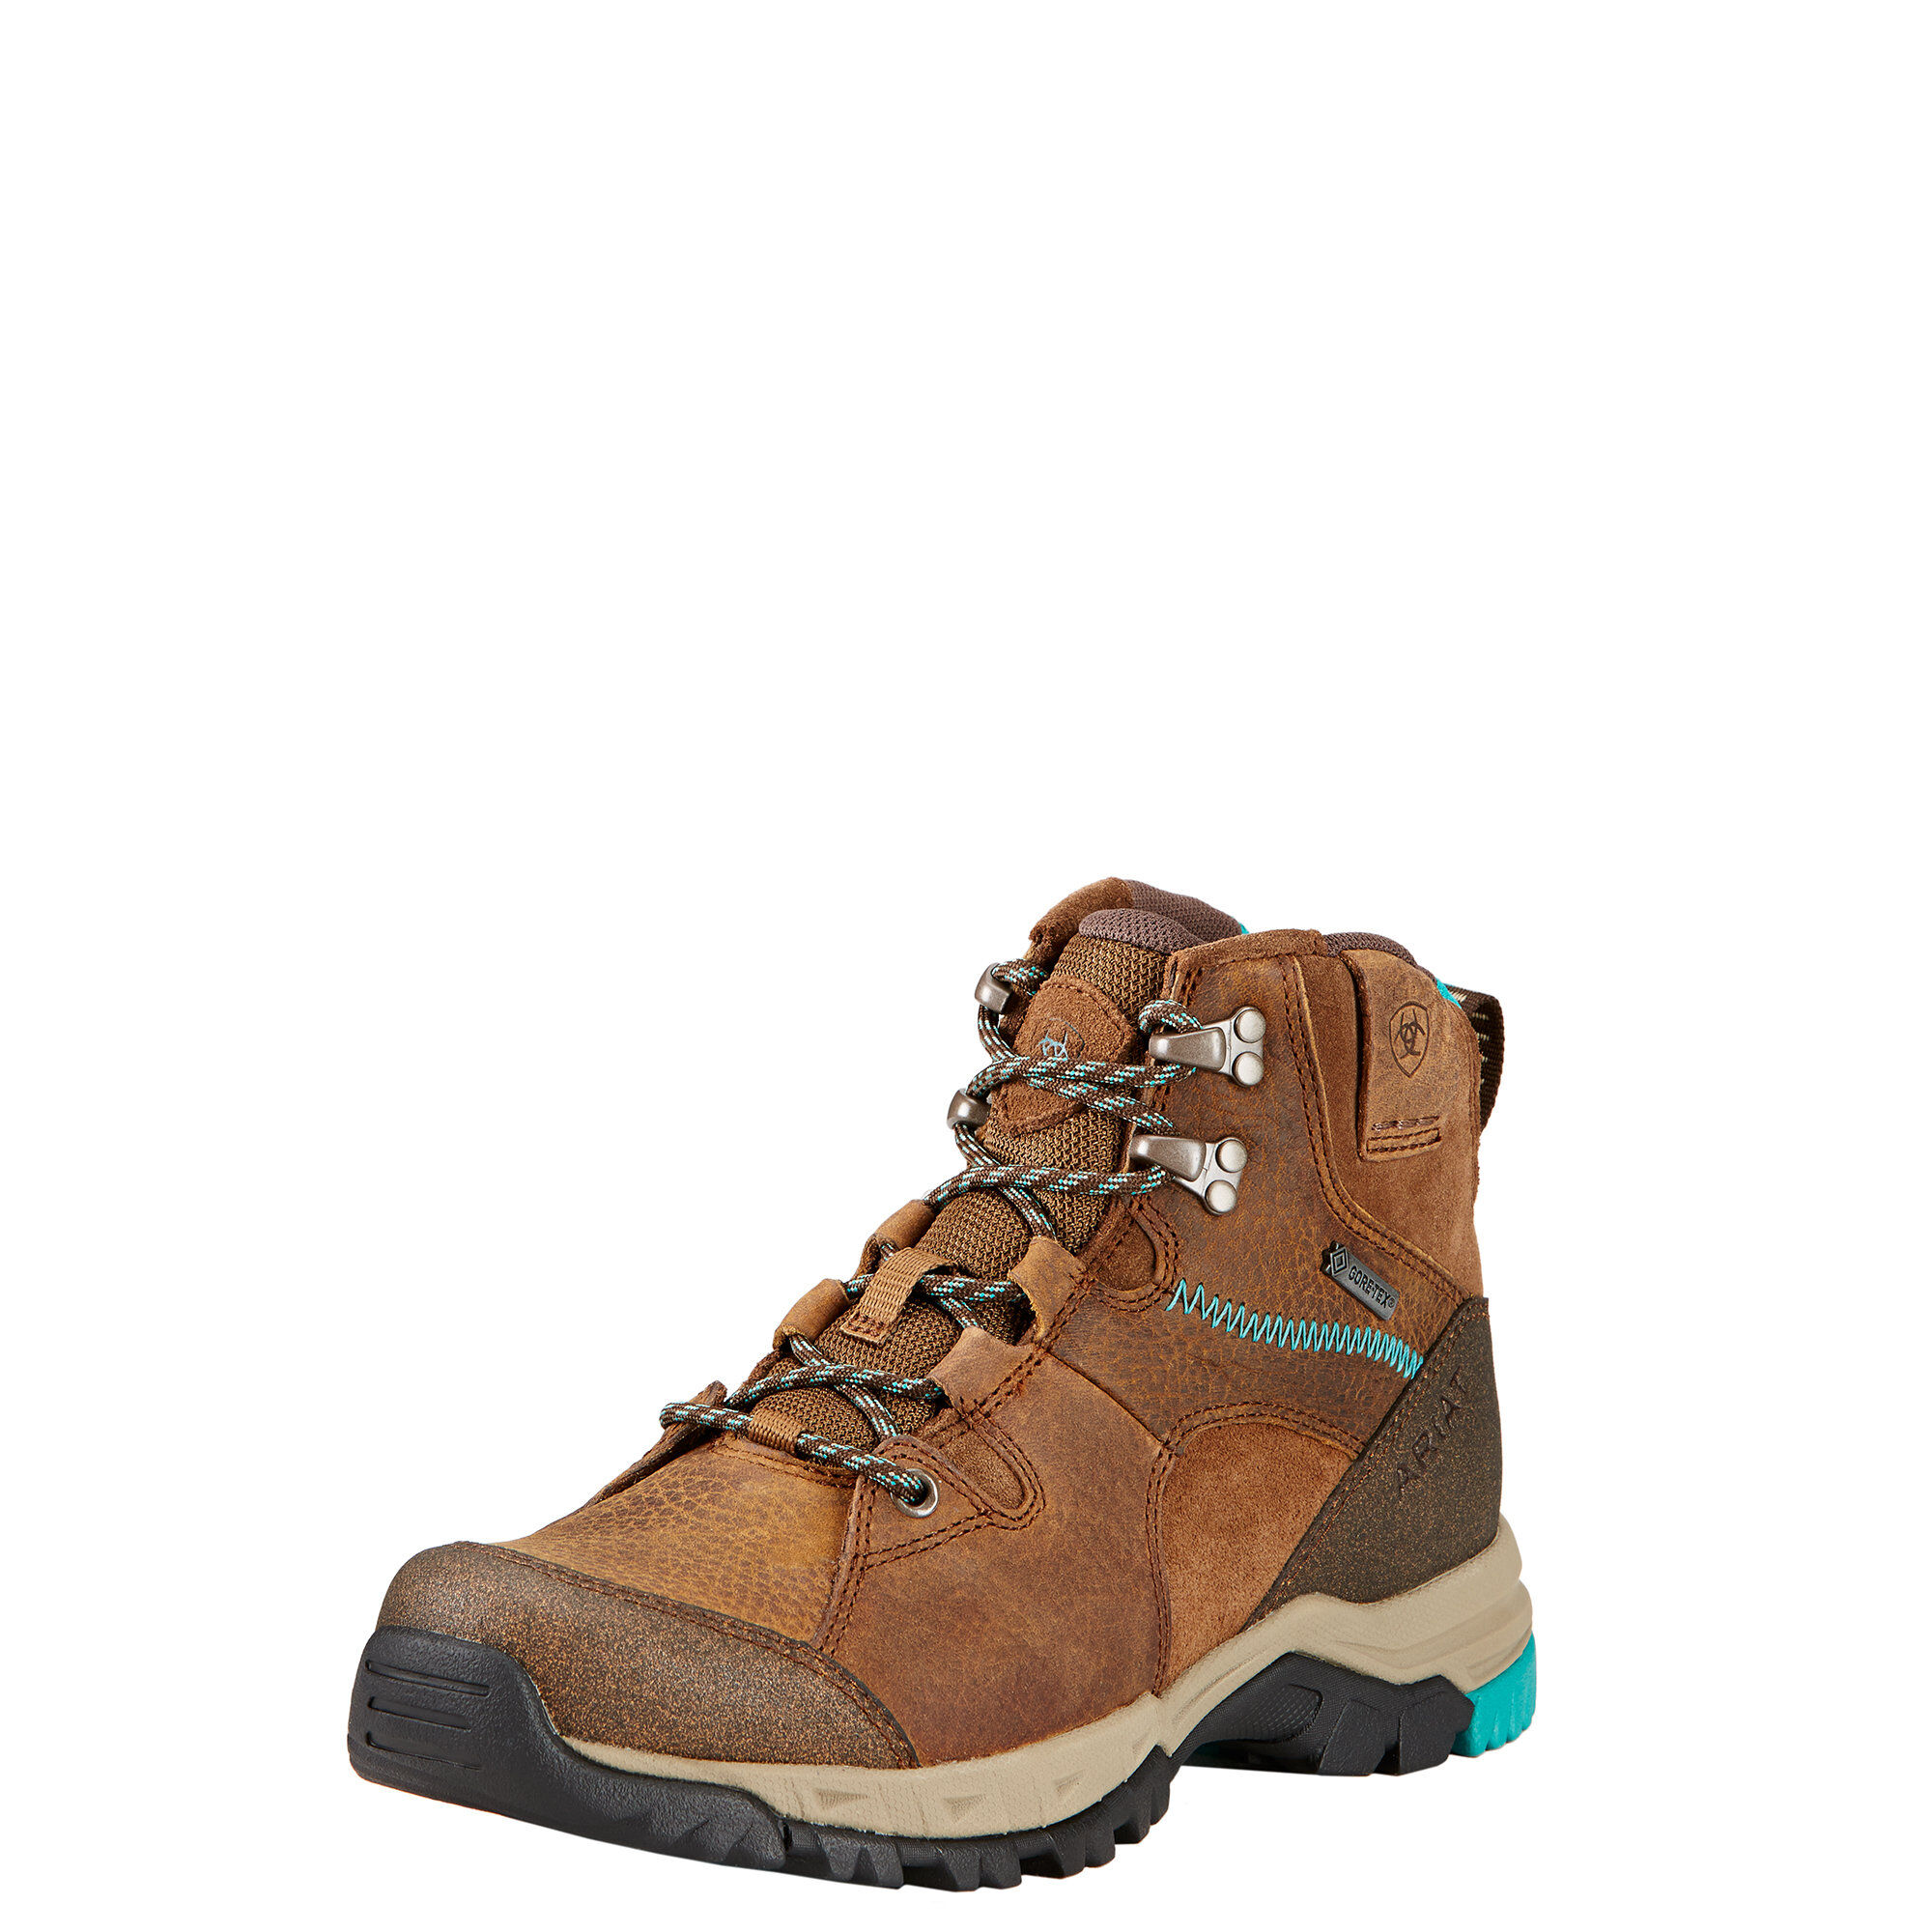 Womens Boots ariat mid skyline gtx taupe rp5z93k2